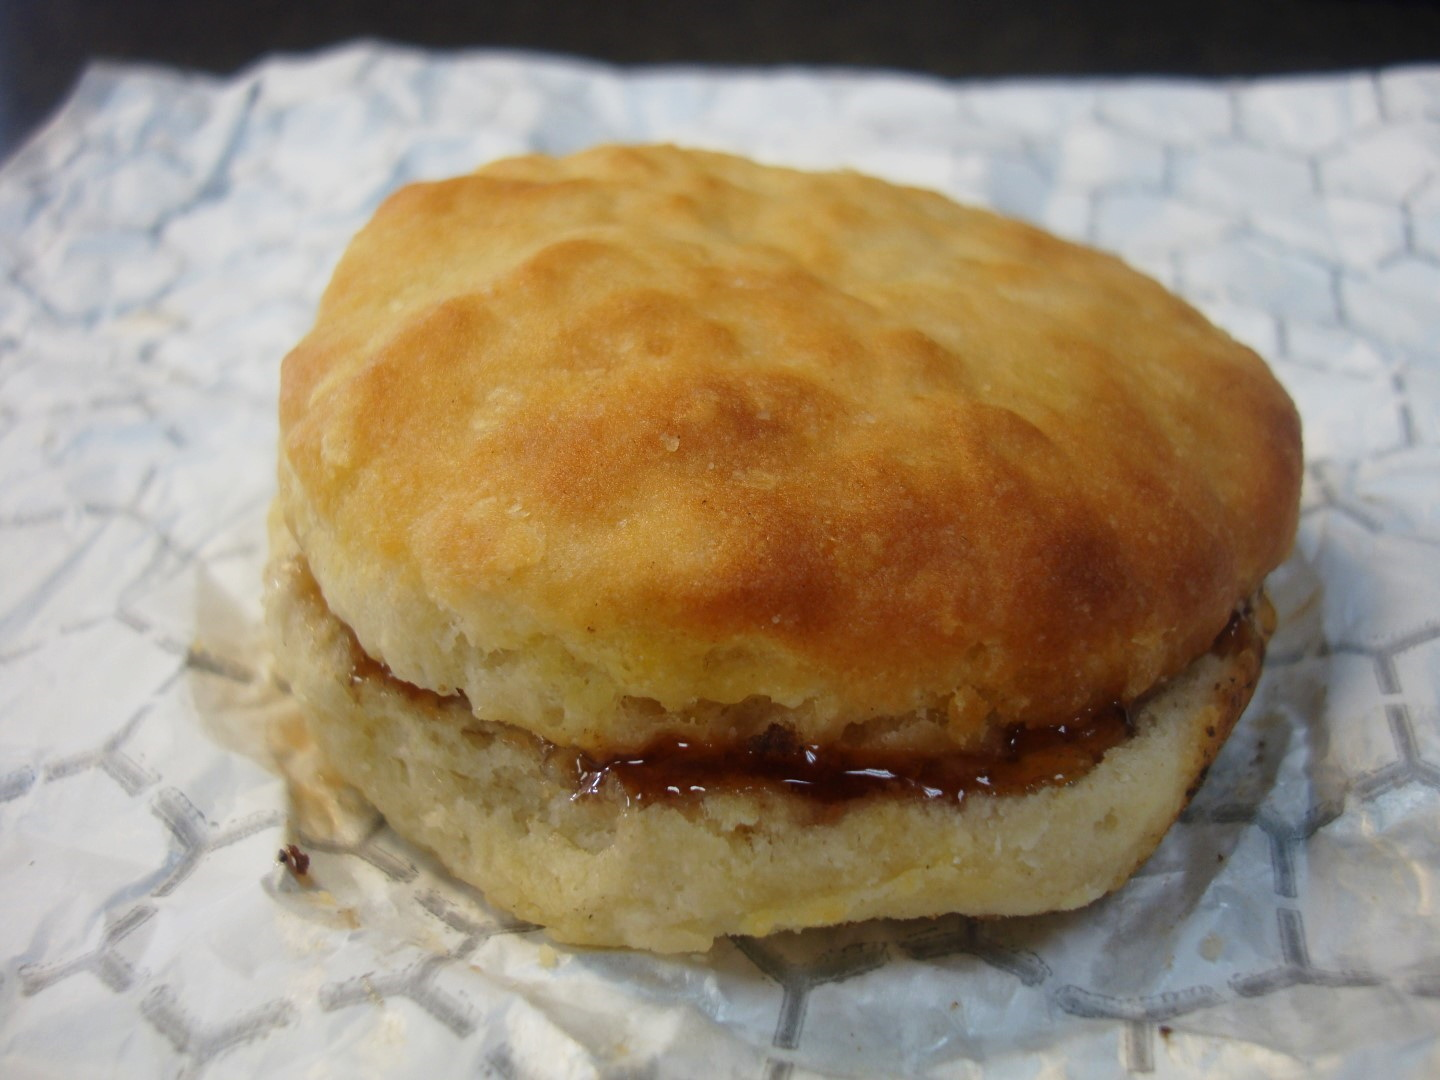 On The Road With RL Reeves Jr: Kentucky Biscuit Company